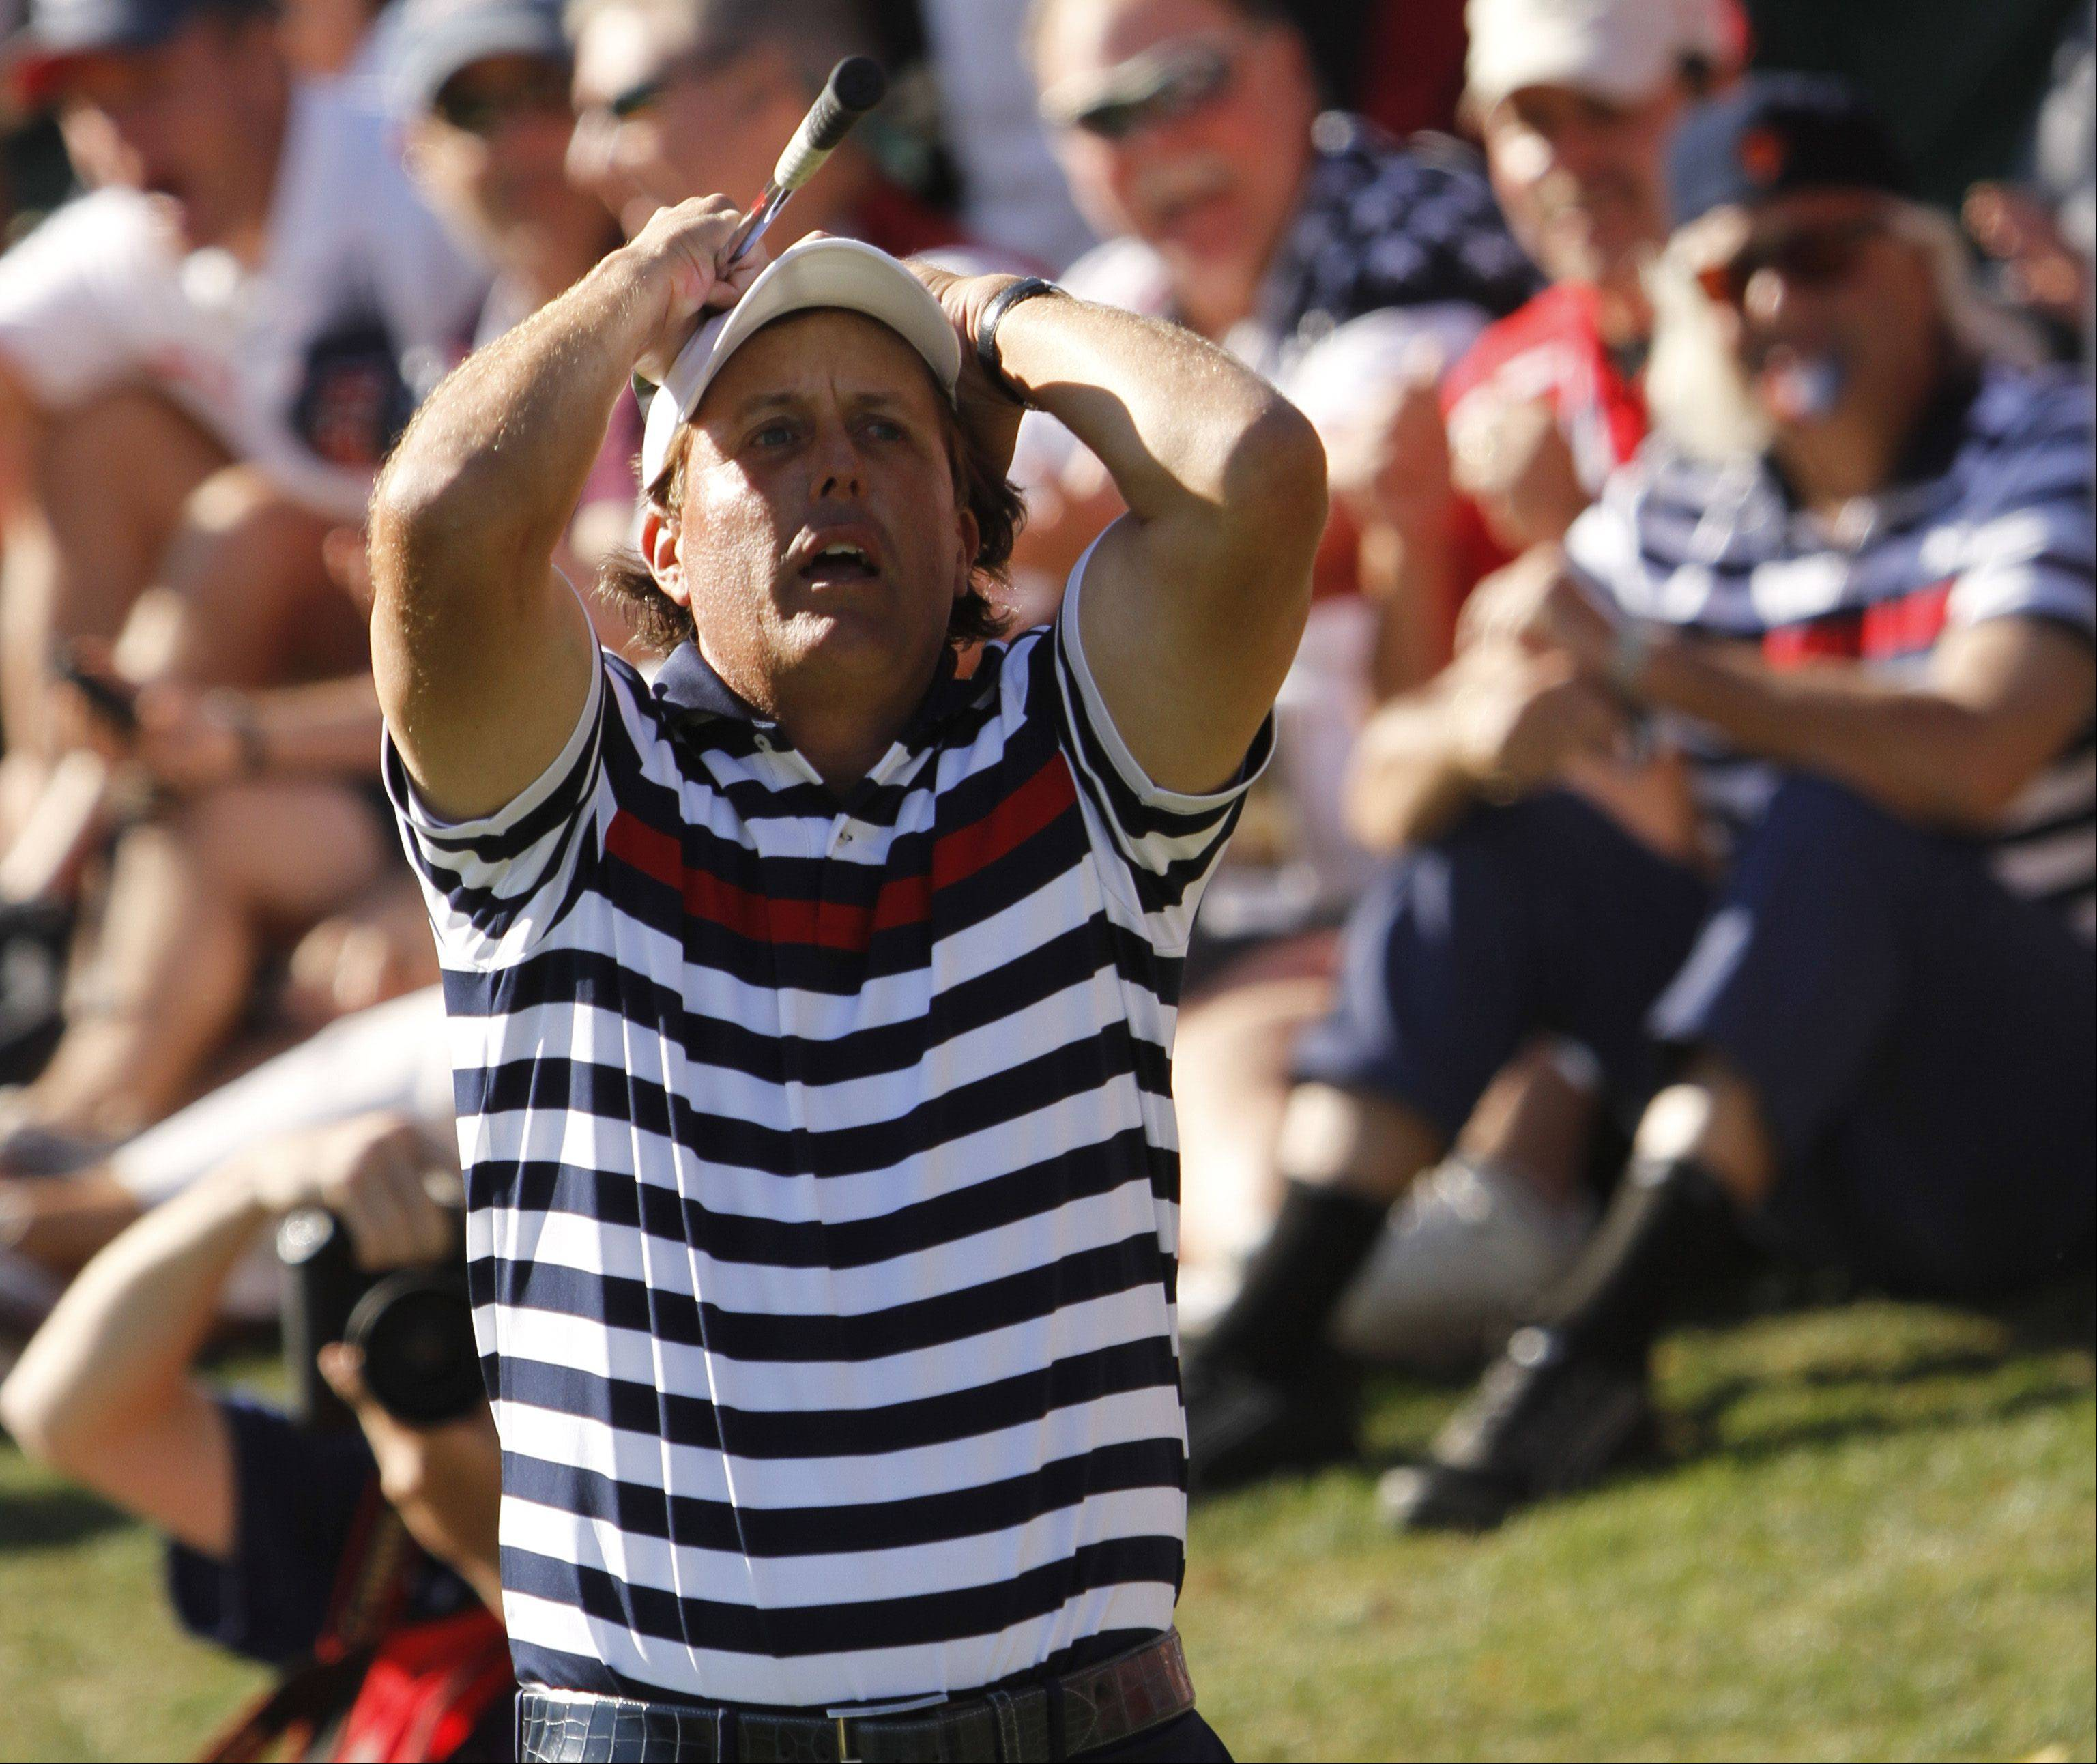 Phil Mickelson reacts after a bad chip on the 17th hole Sunday during the final day of the 2012 Ryder Cup at Medinah Country Club.